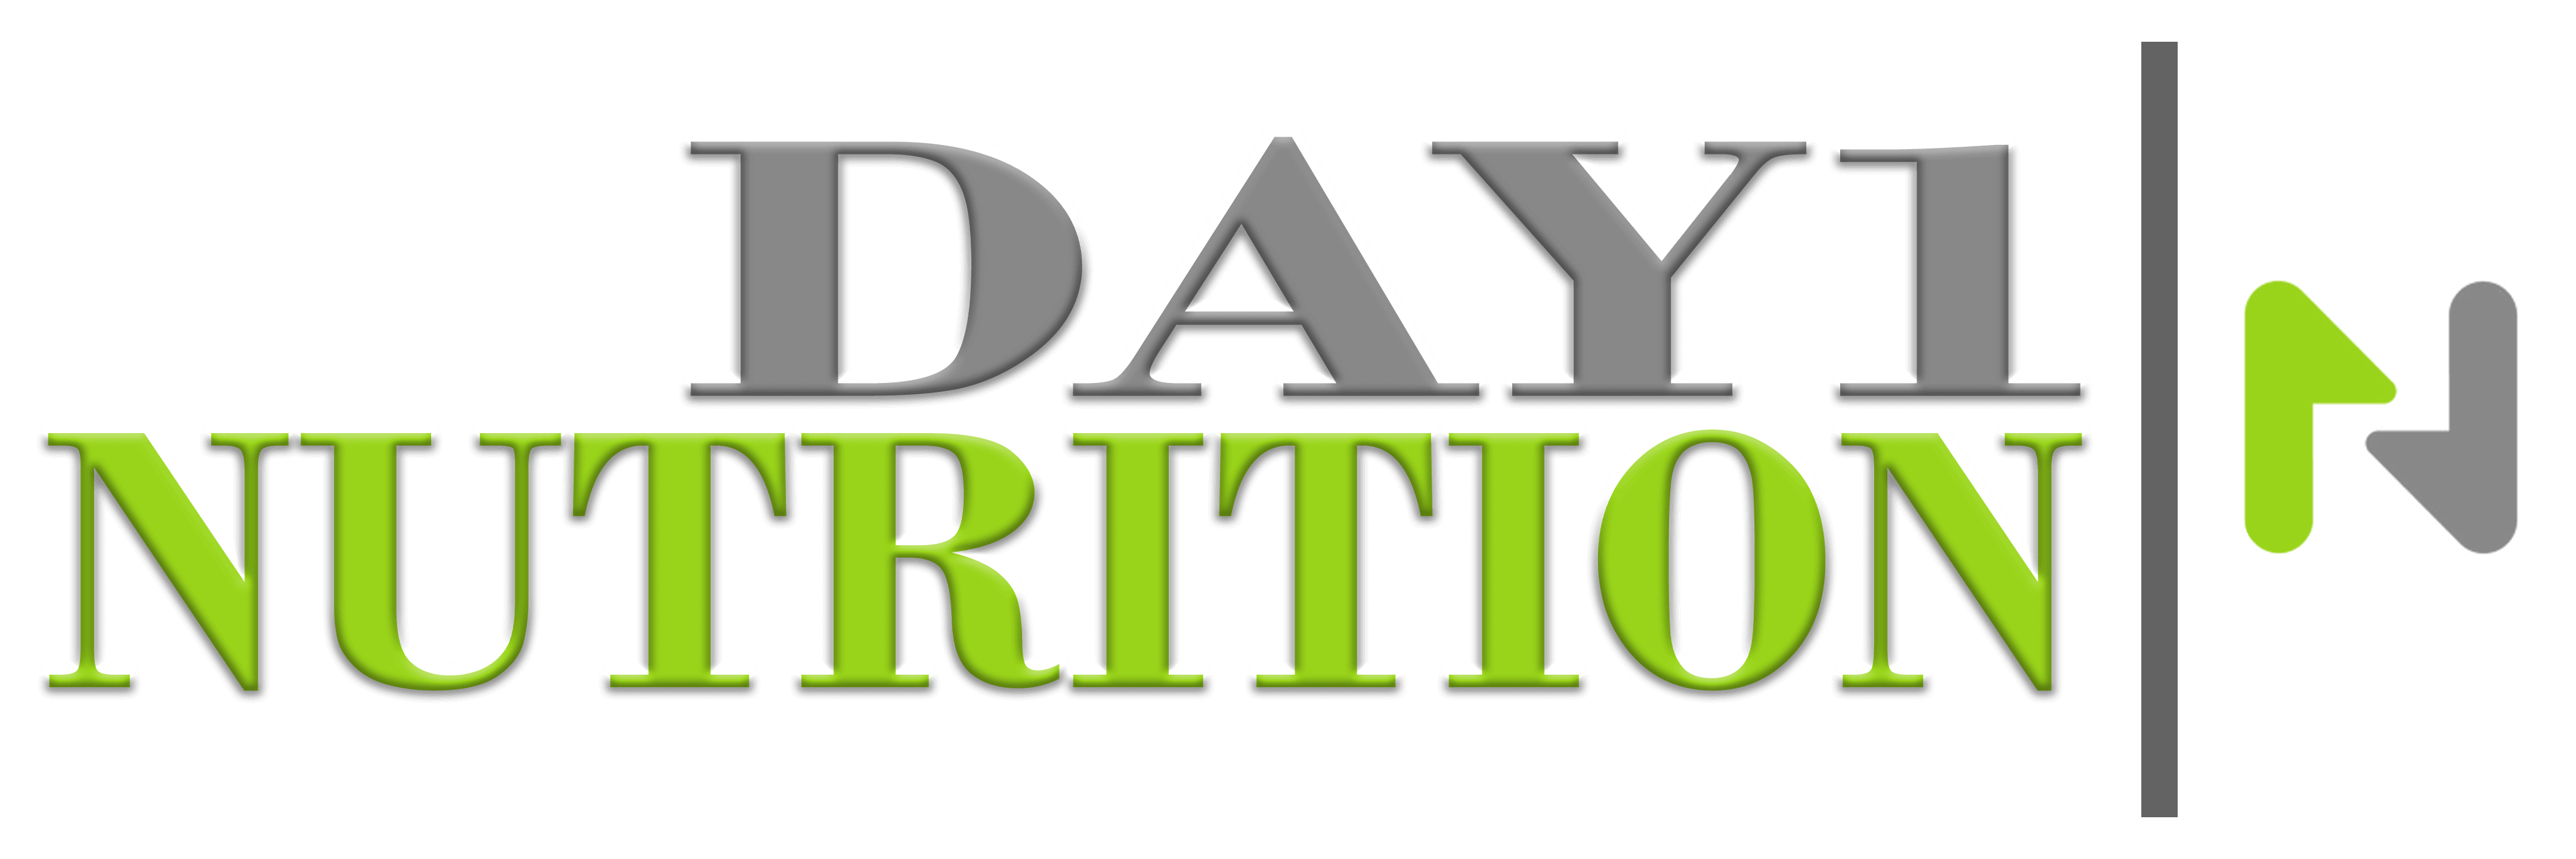 Day1nutrition coupon code